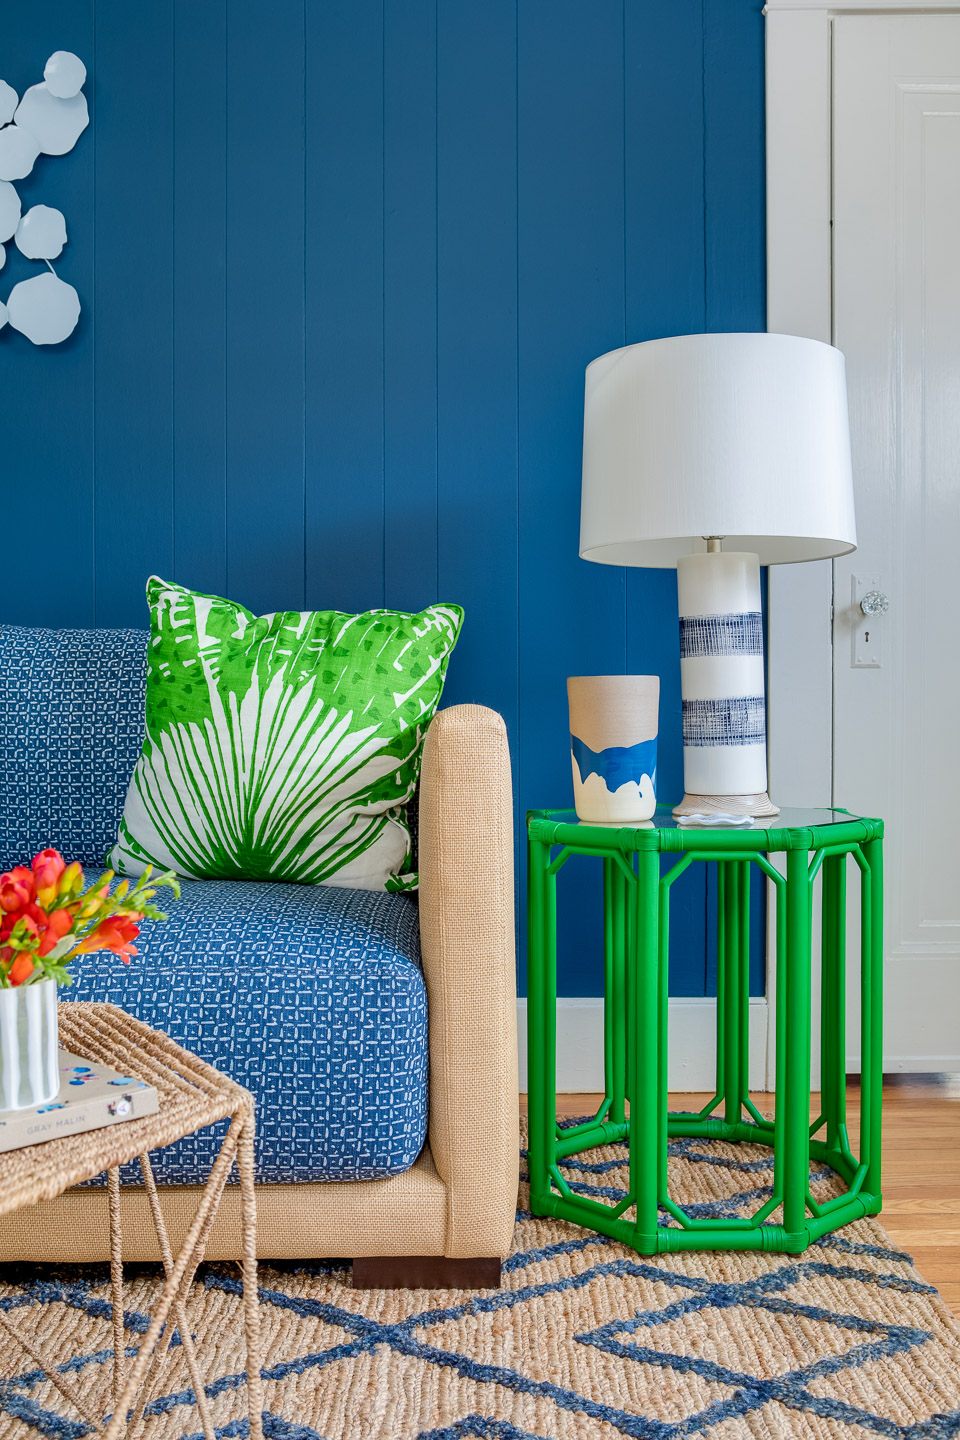 Nigro Kay Getaway, beach house decor, east coast, coastal decor, digs design, love your digs, blue couch, living room, family room, blue walls